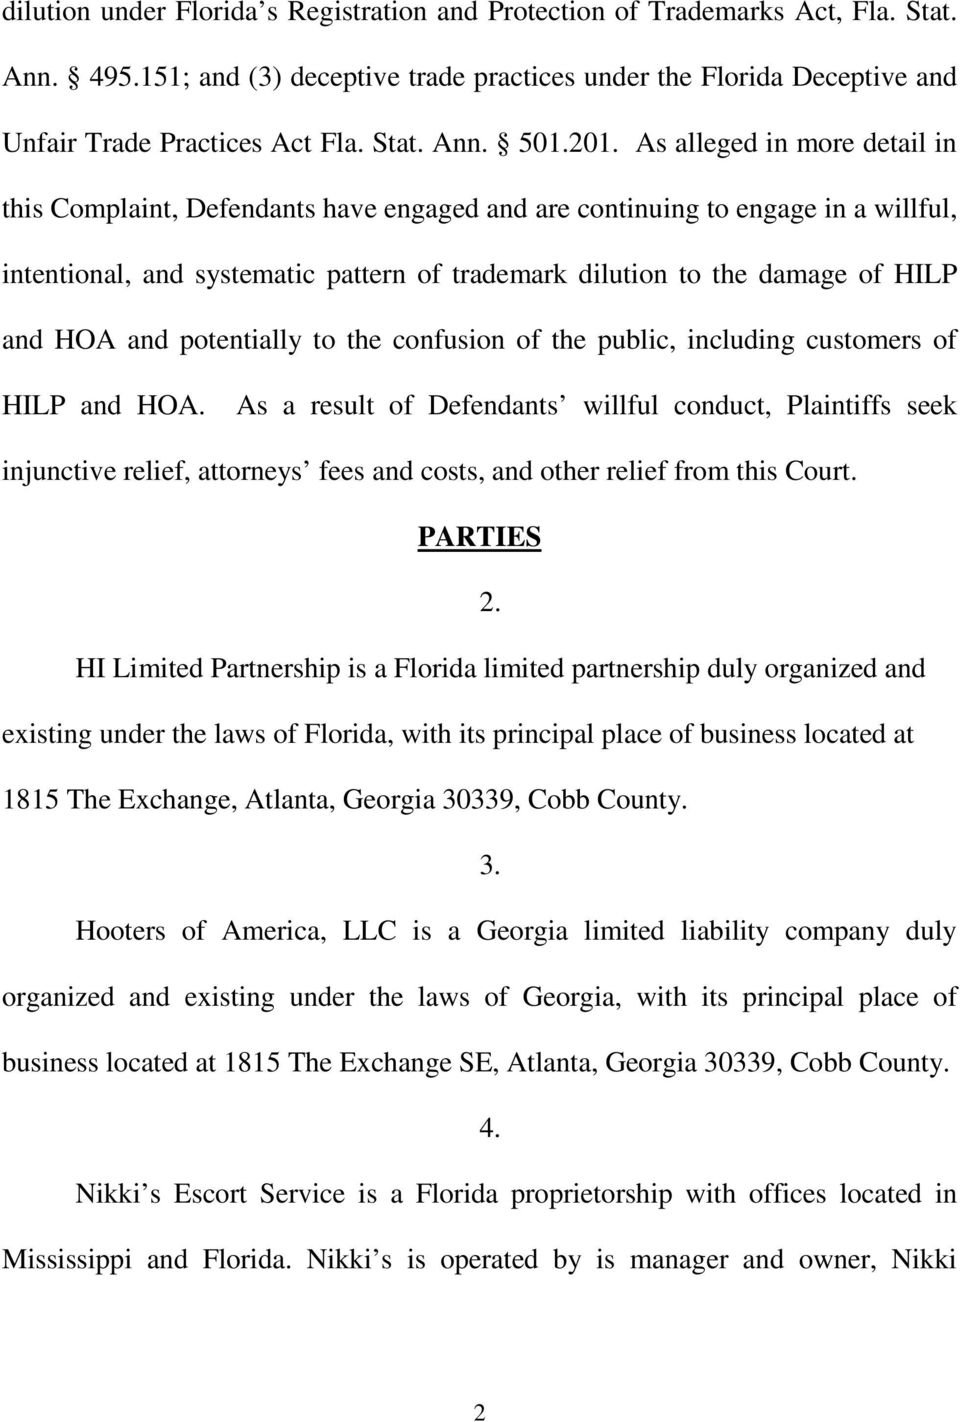 and HOA and potentially to the confusion of the public, including customers of HILP and HOA.